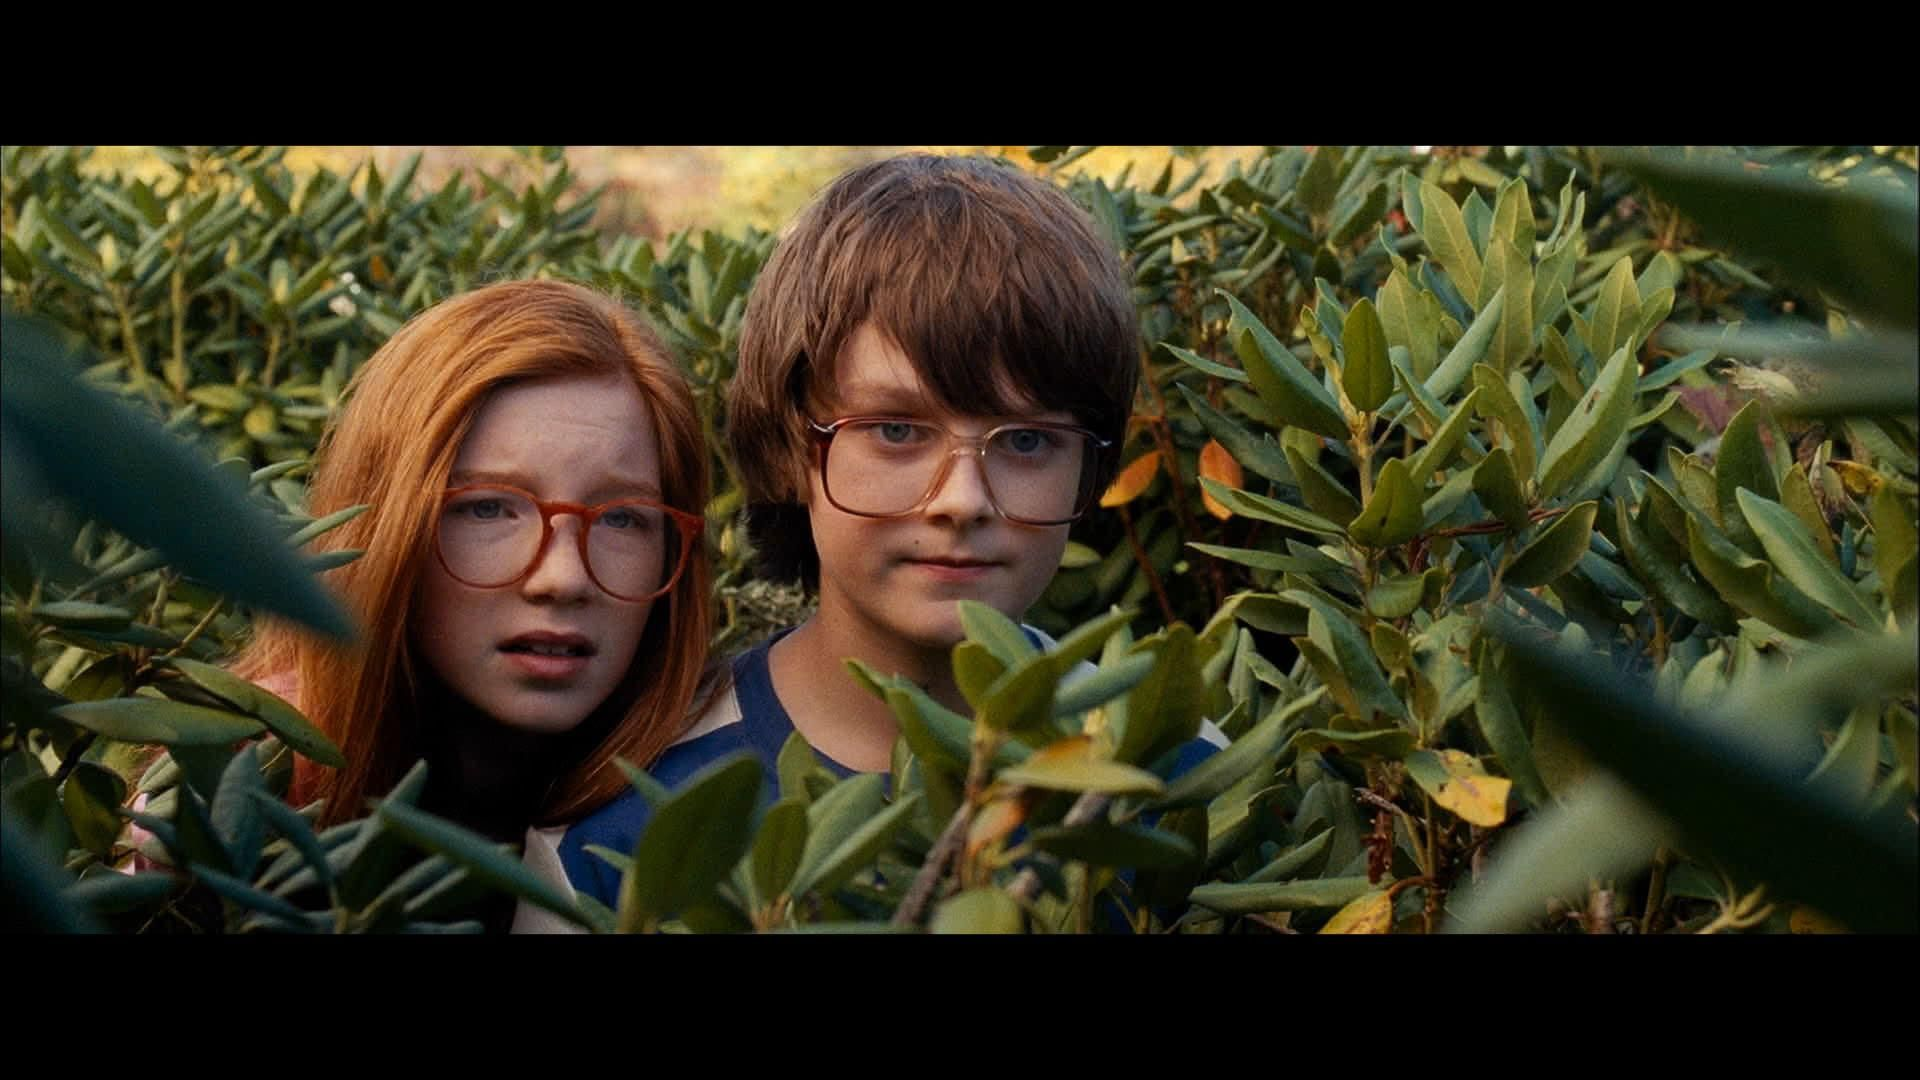 Standing Up Annalise Basso And Chandler Canterbury Up The Movie Stand Up Movies